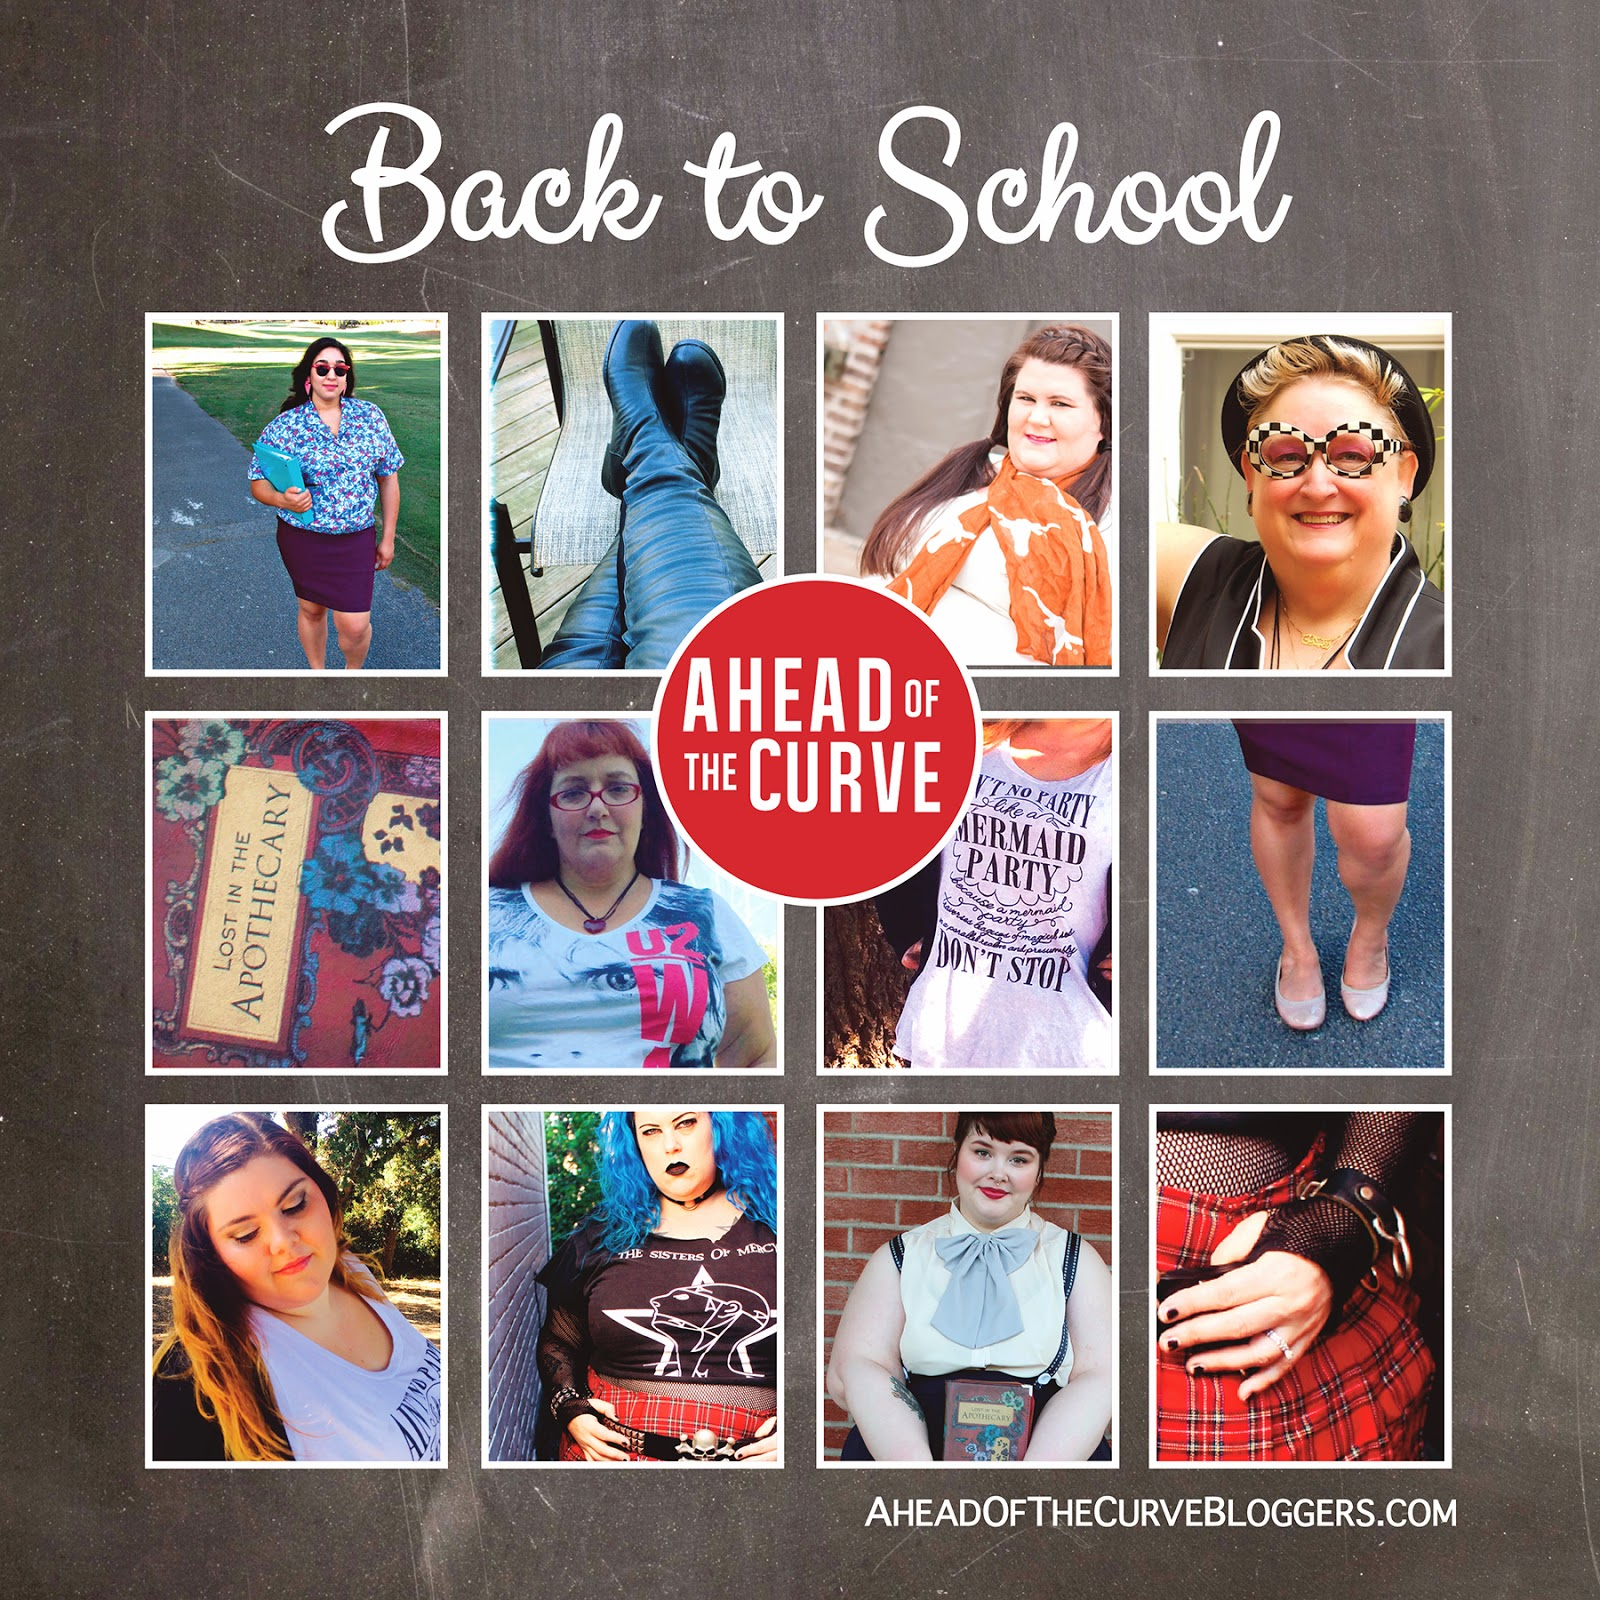 http://www.aheadofthecurvebloggers.com/2014/09/back-to-school-september-2014_9.html